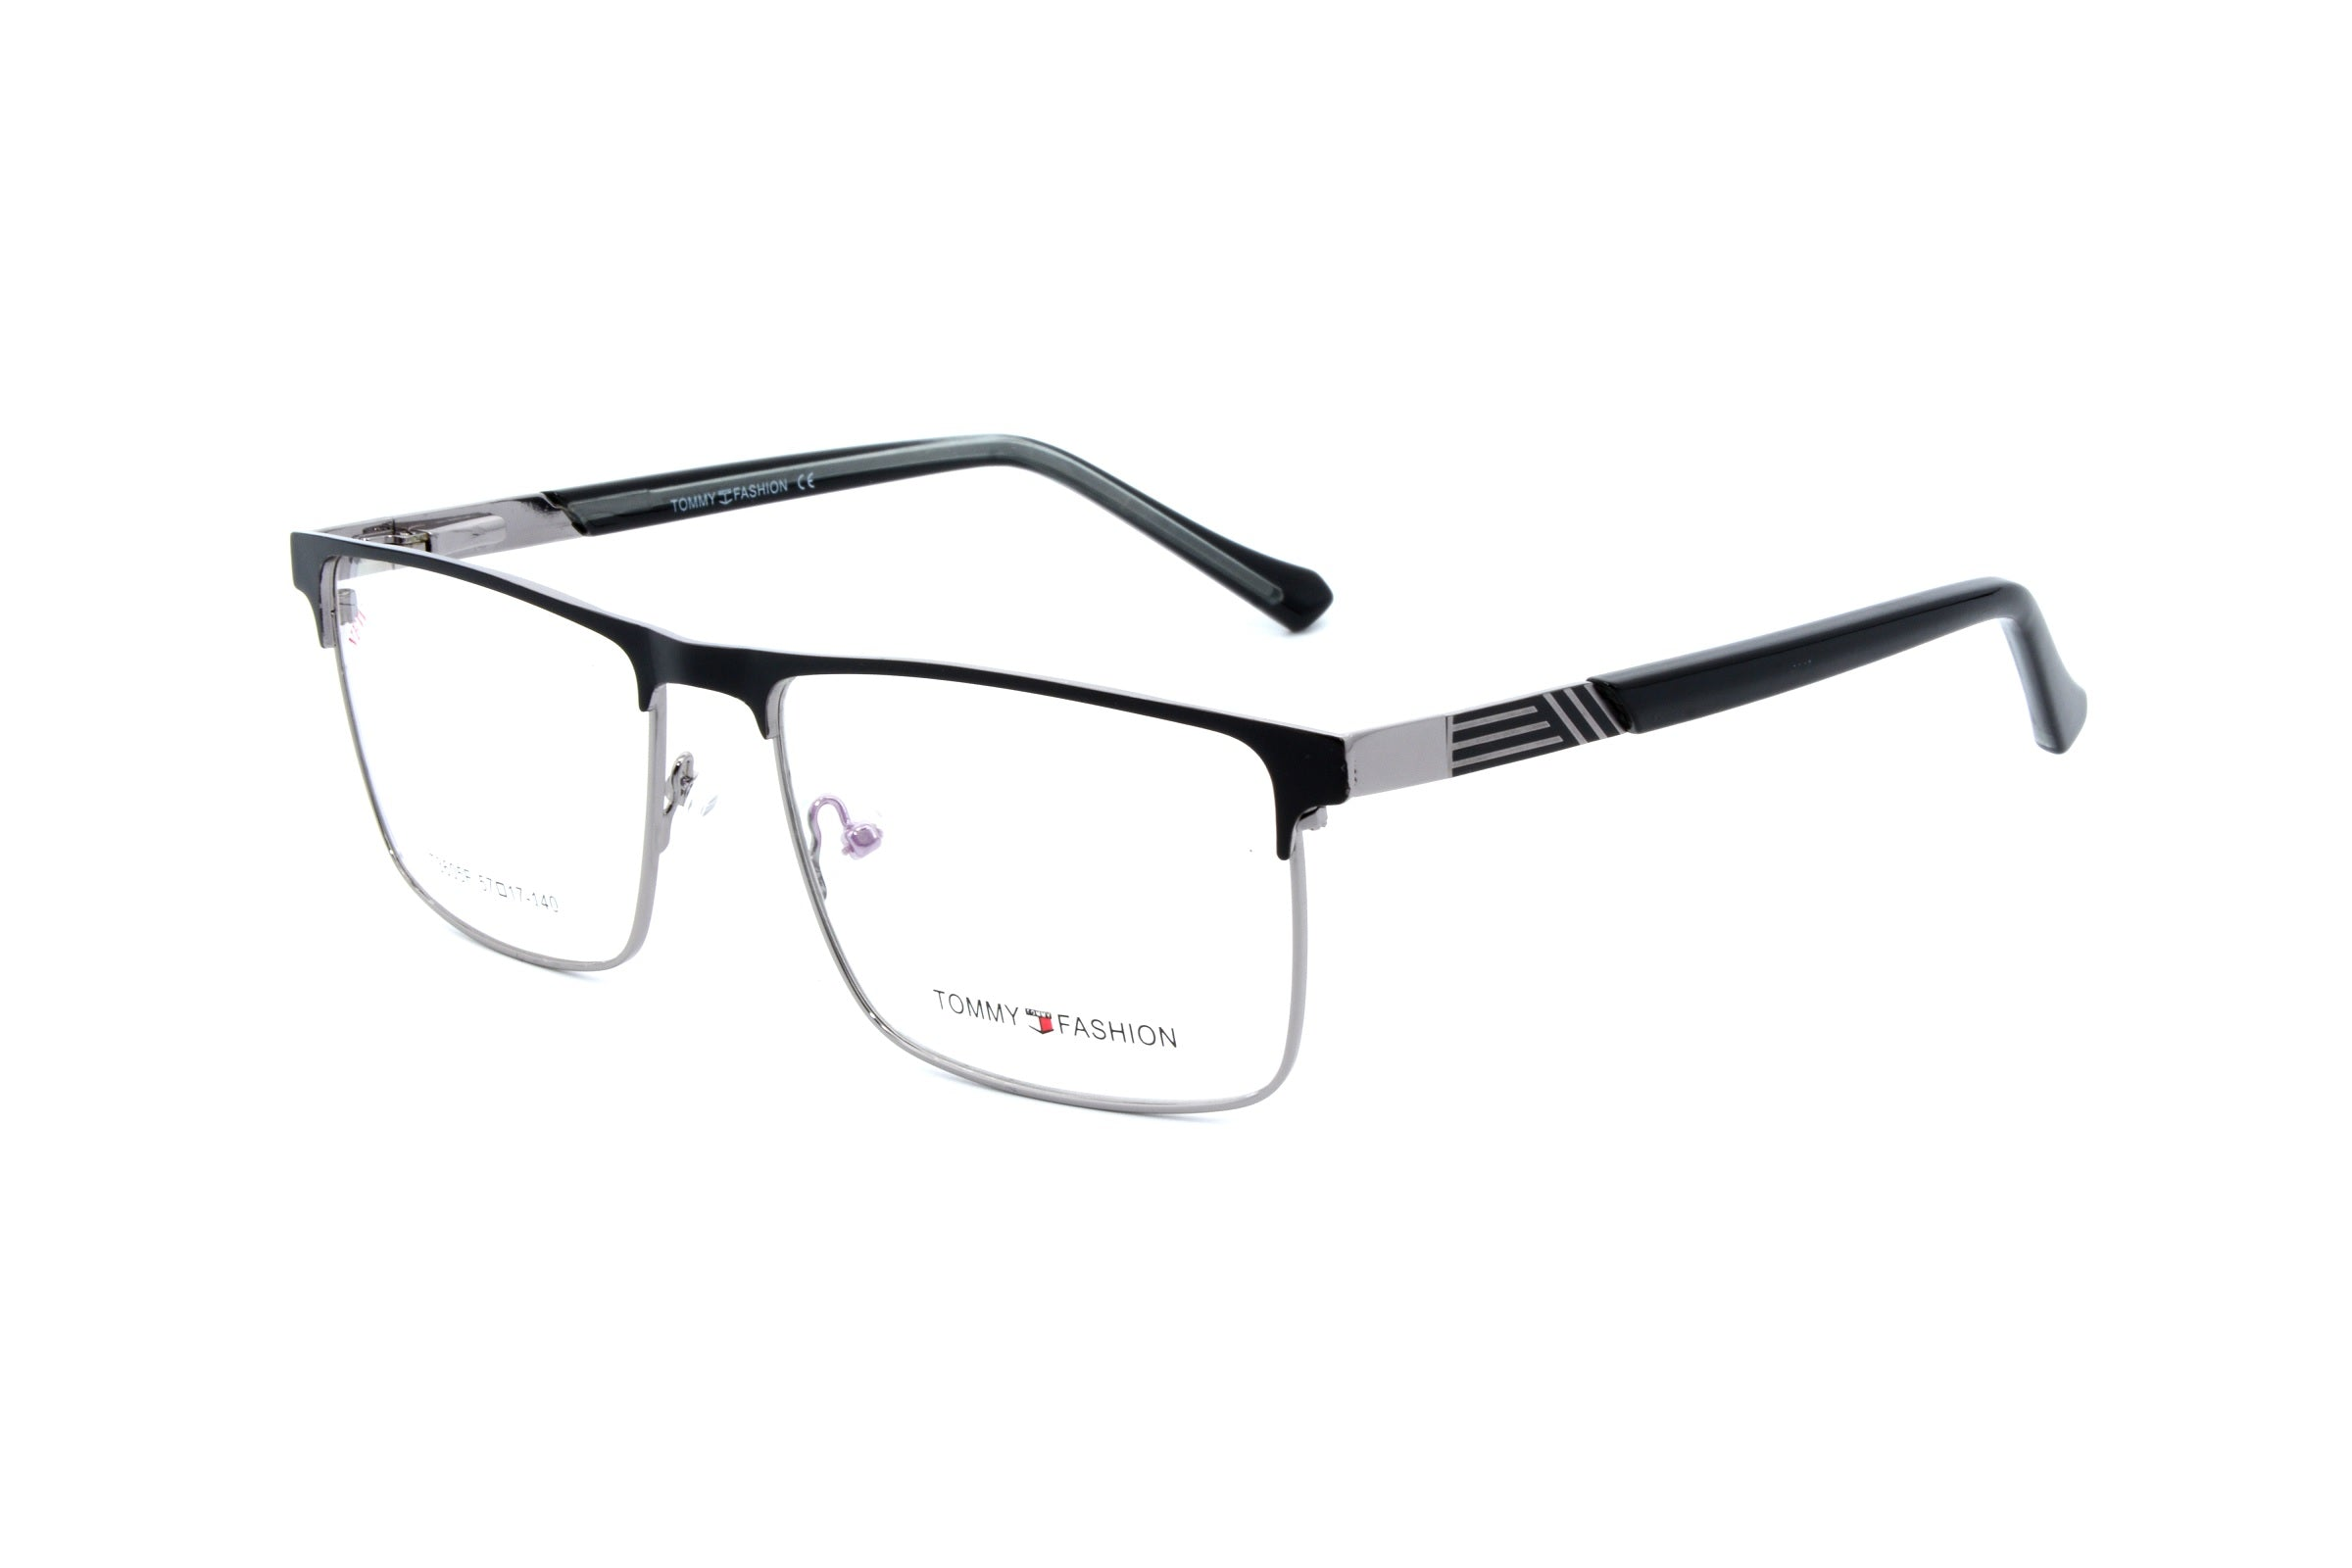 Tommy Fashion eyewear 3605F, C2 - Optics Trading